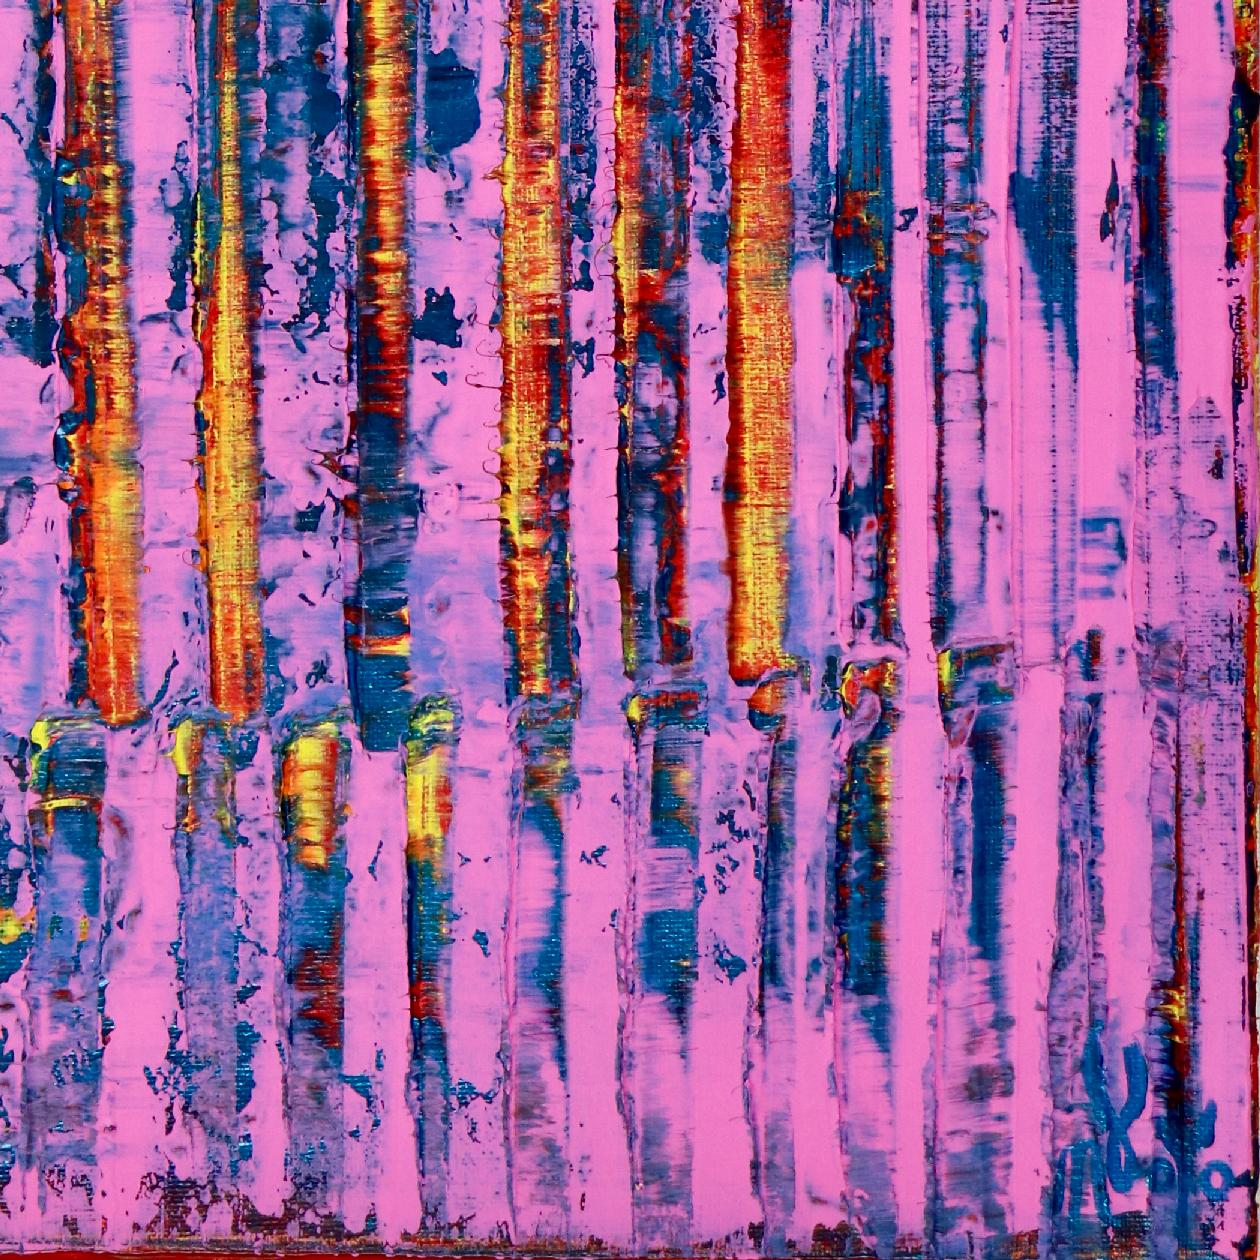 Pink Takeover (Yellow Lights)   Inspired by Nature (2020) by Nestor Toro